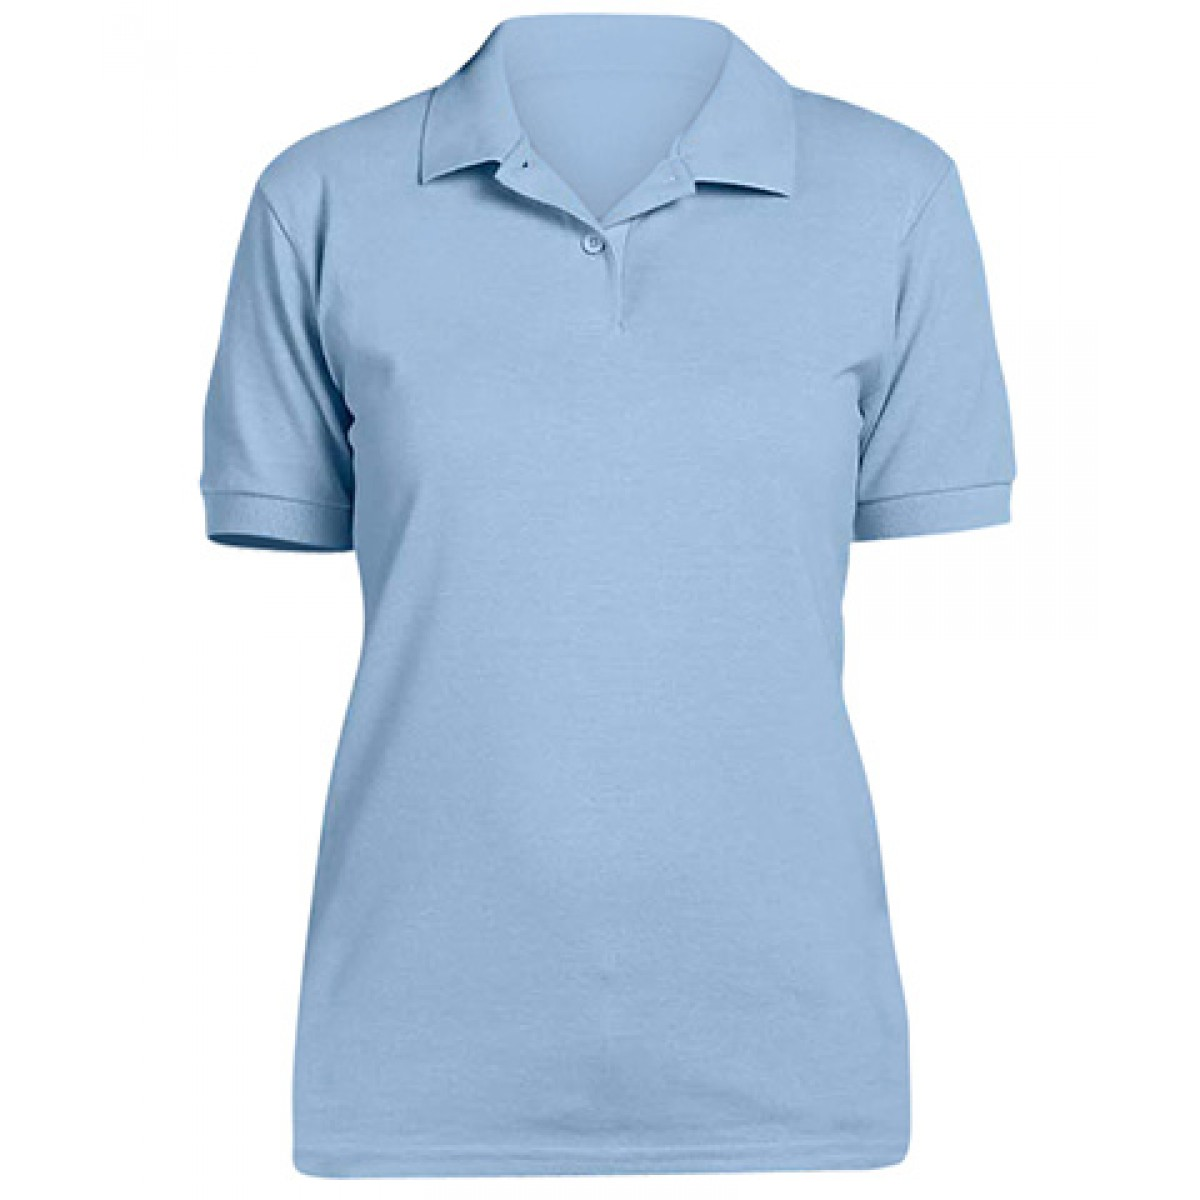 Ladies' 6.5 oz. Piqué Sport Shirt